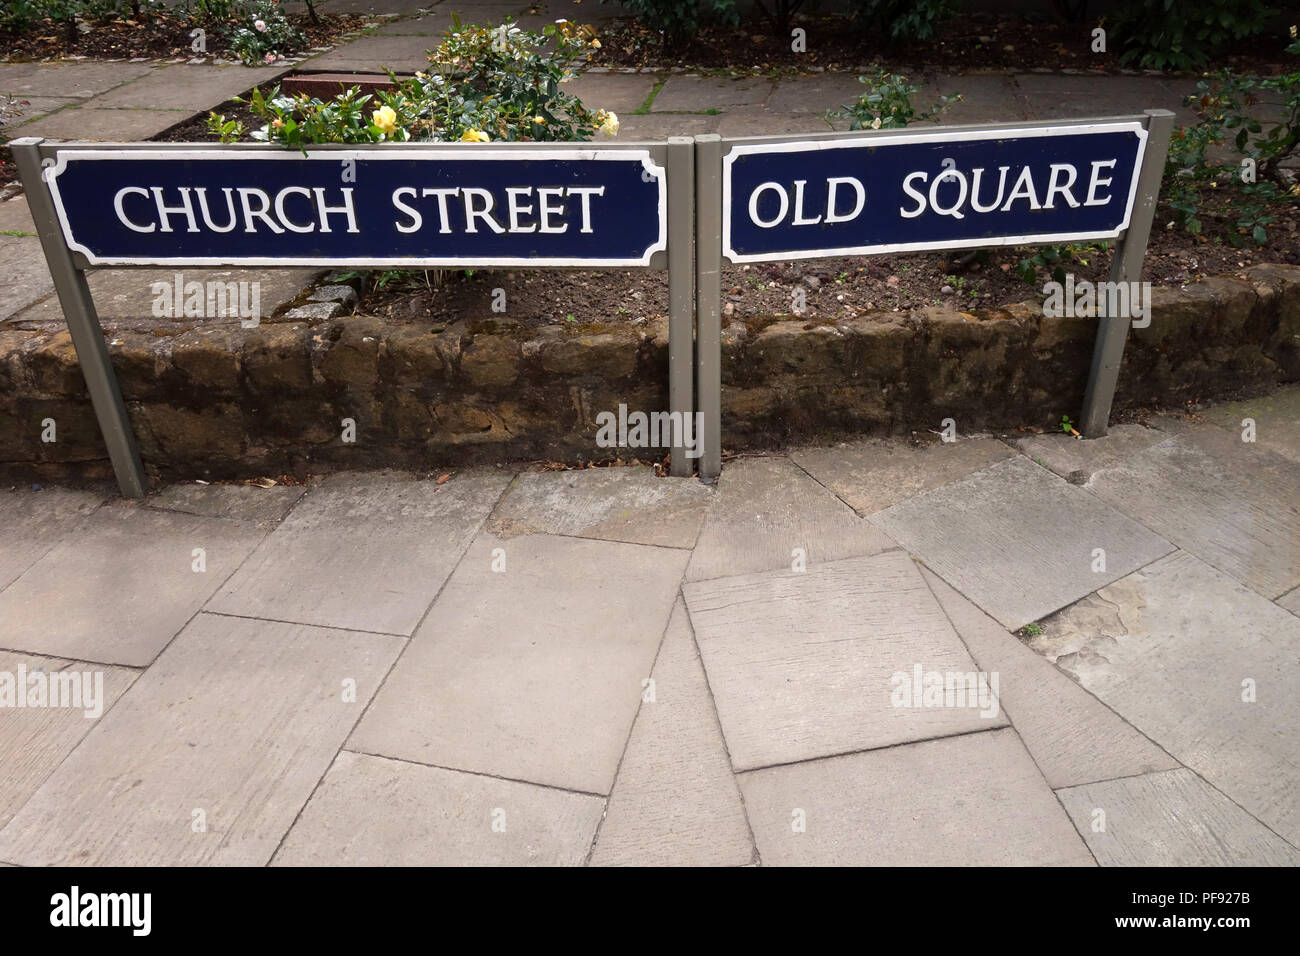 Merging roads and two Church street, Old Street road name signs in the busy market town of Warwick, Warwickshire - Stock Image